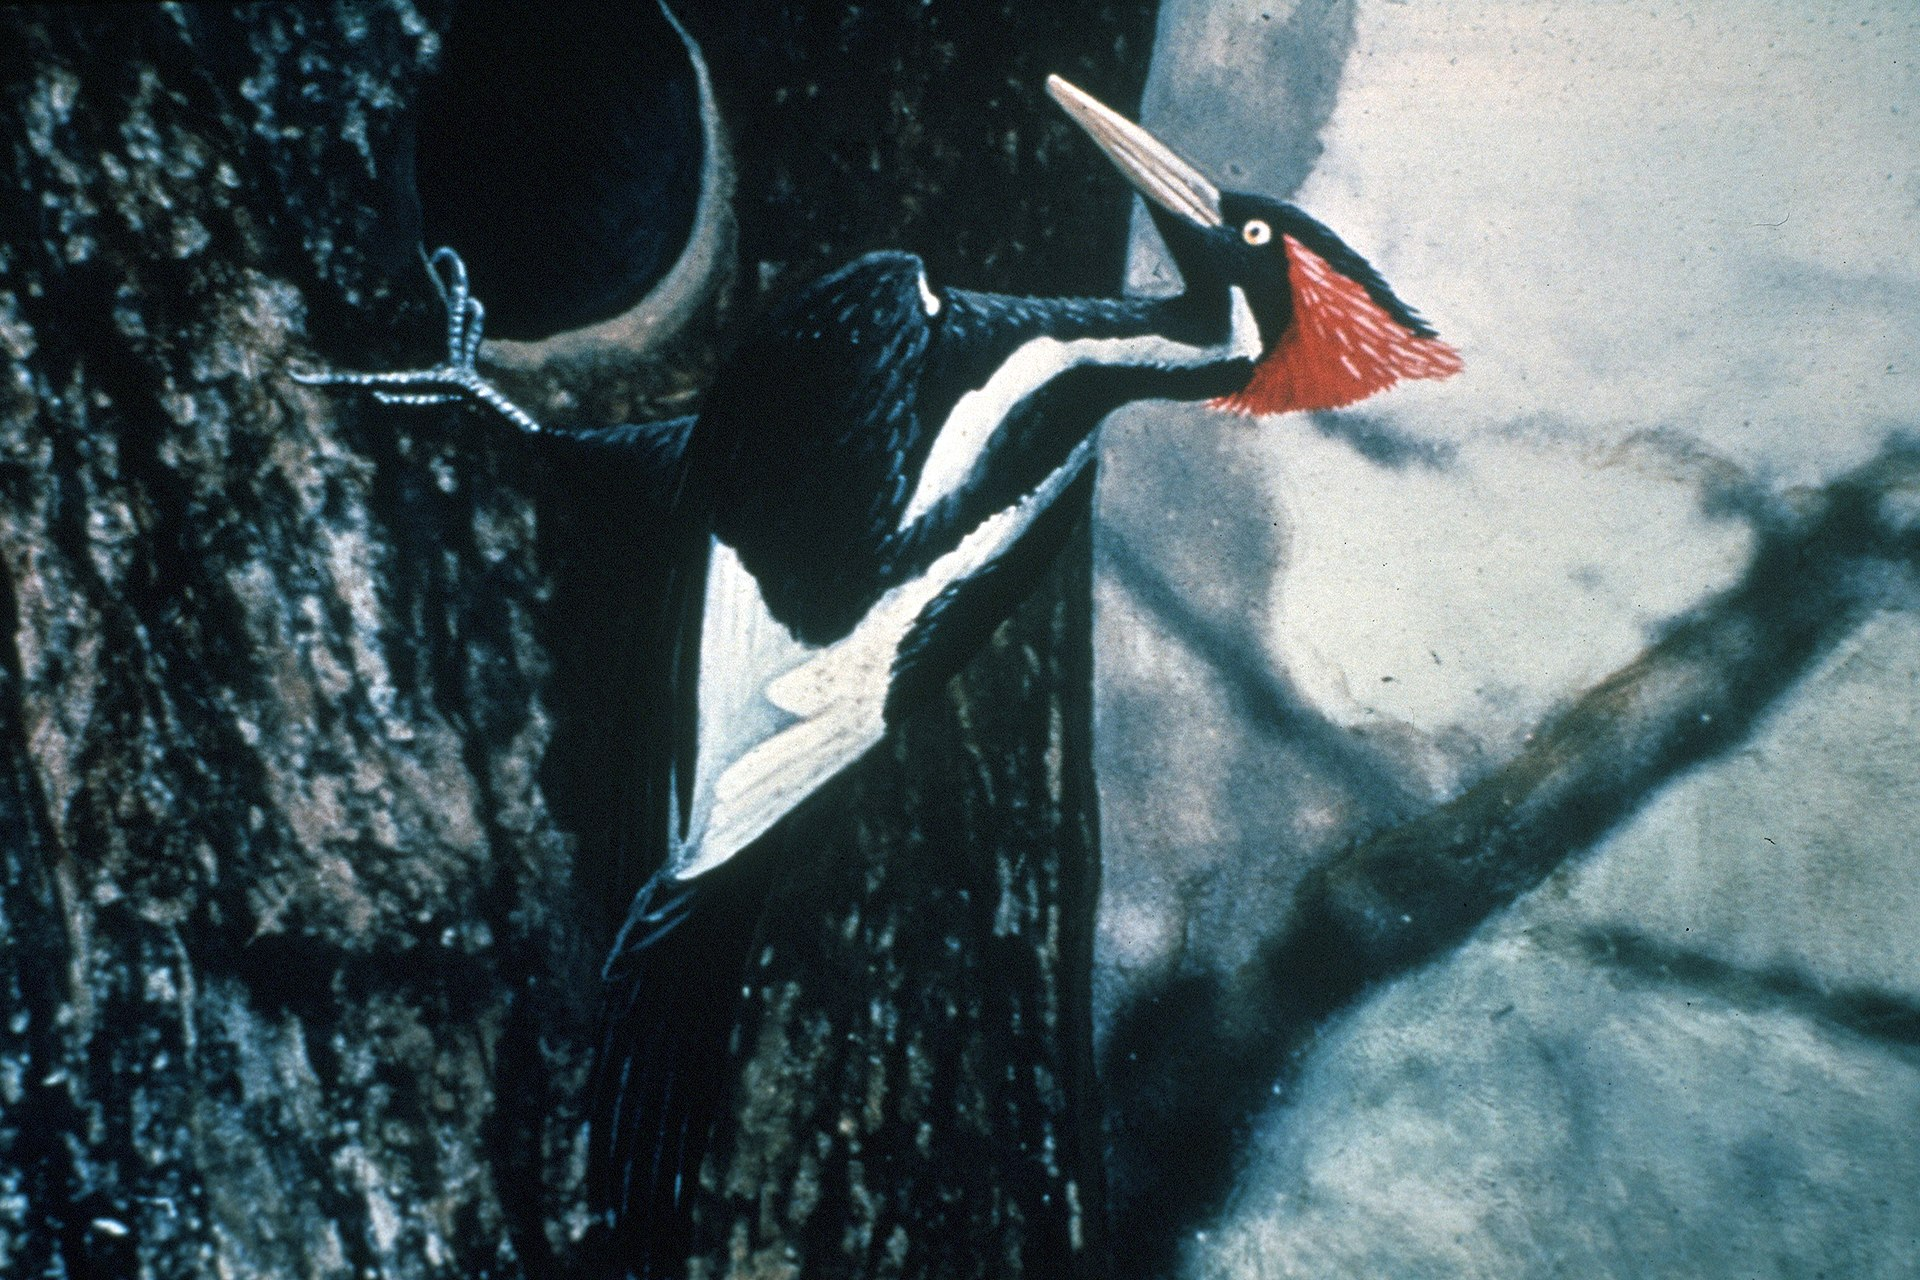 Ivory-billed woodpecker - Wikipedia